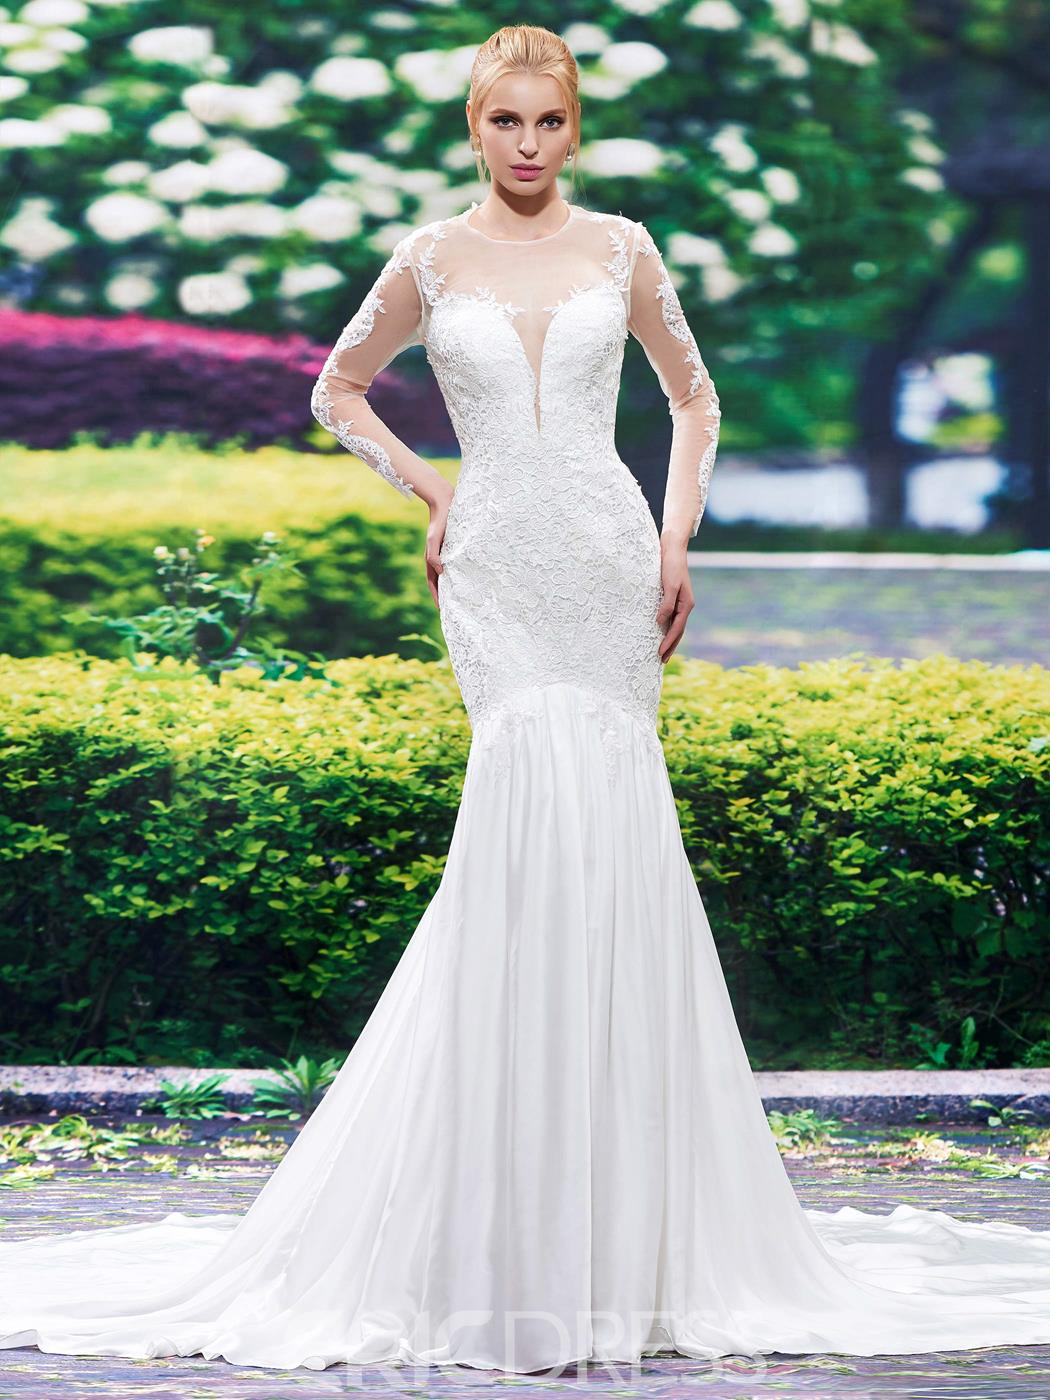 Ericdress Beautiful Illusion Neckline Backless Long Sleeves Mermaid Wedding Dress